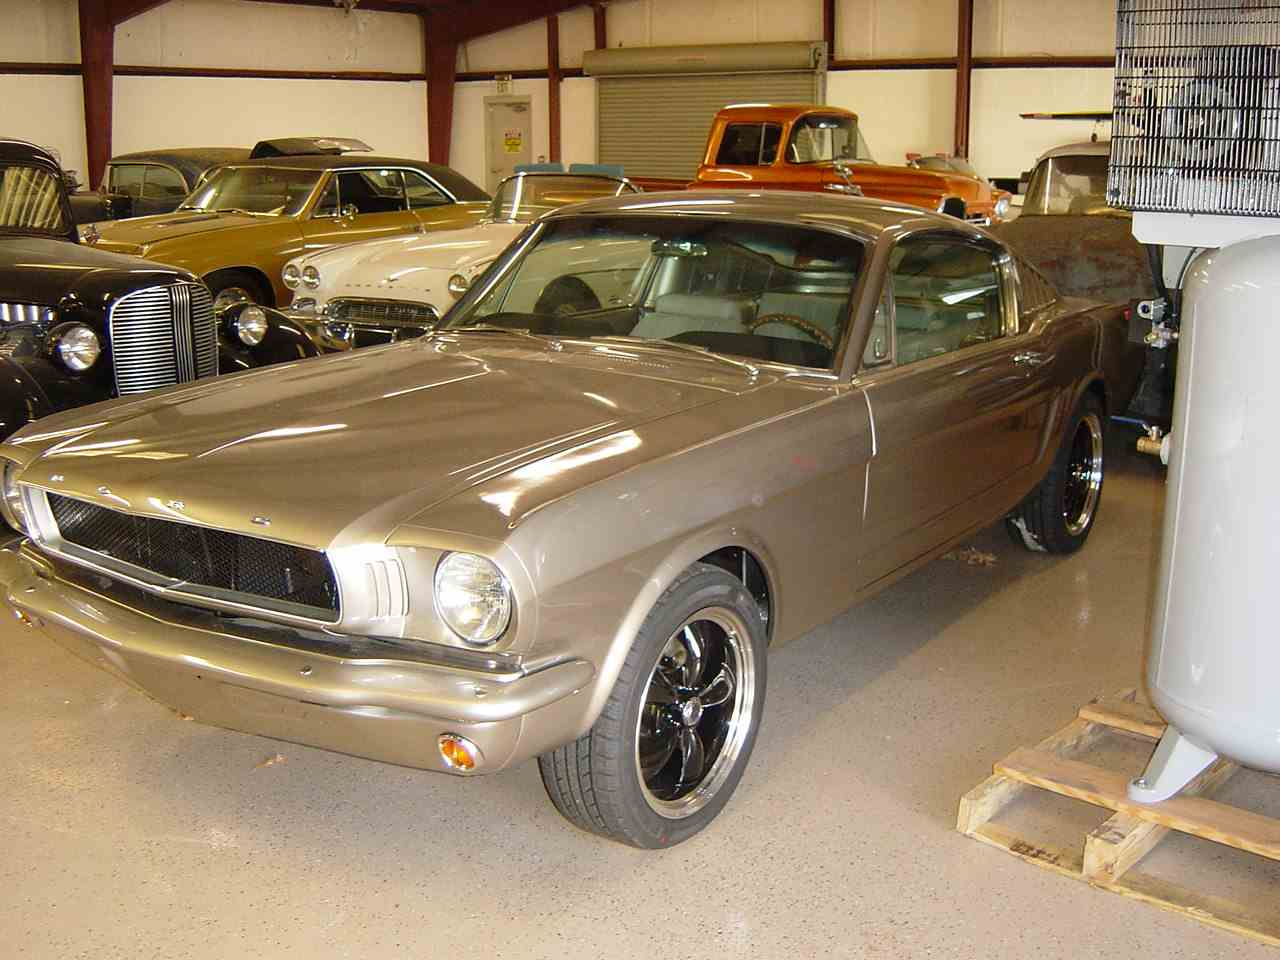 1965 Ford Mustang for Sale | ClassicCars.com | CC-1057233